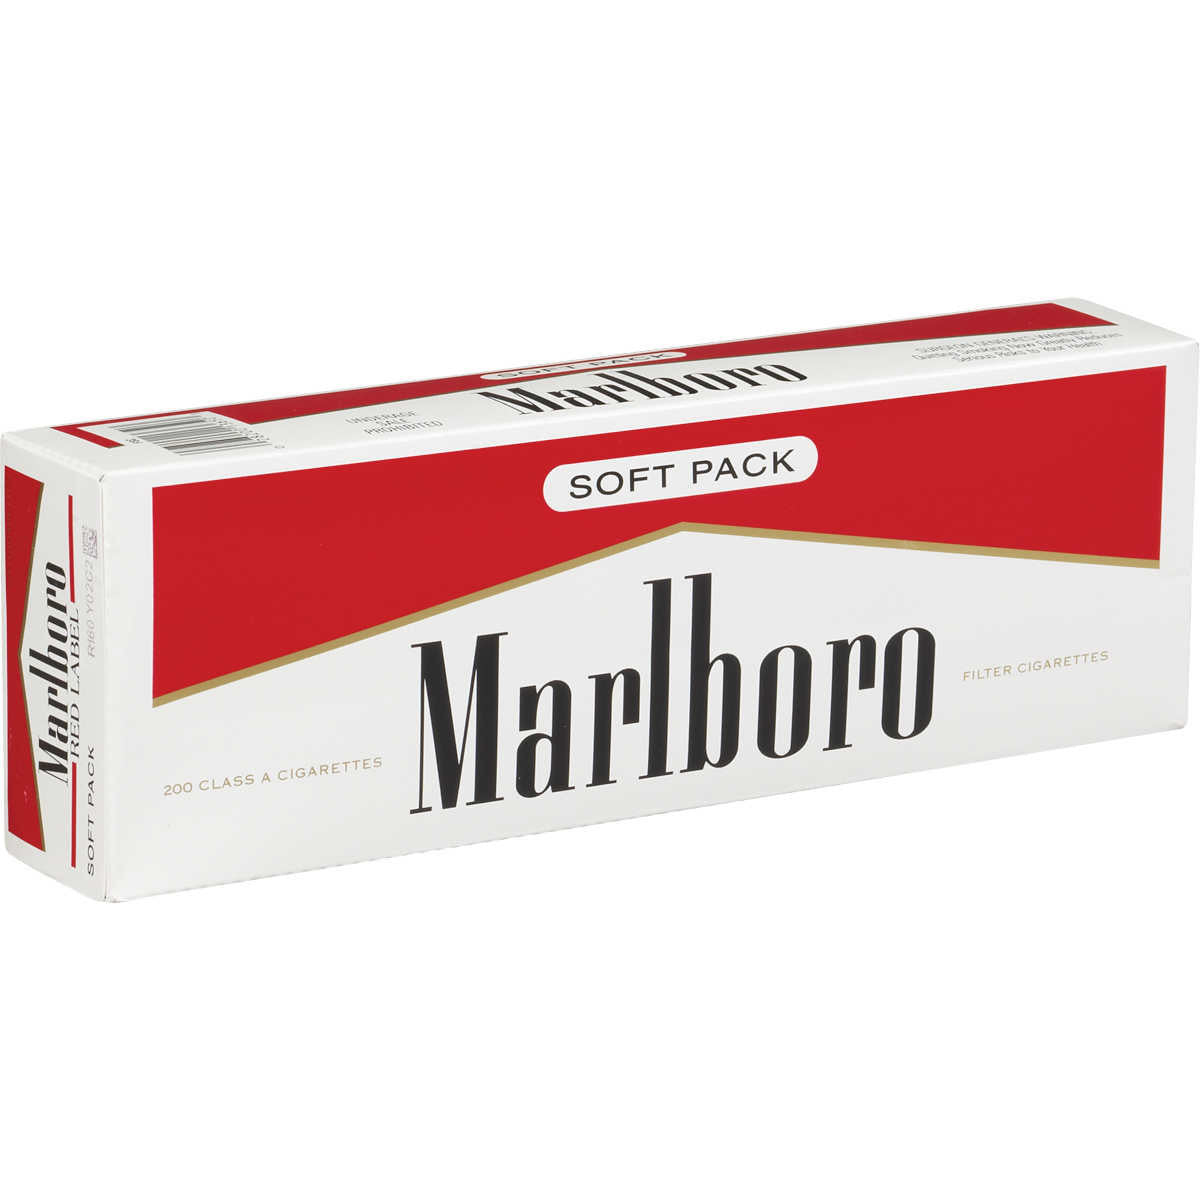 Duty free cigarettes prices Greece